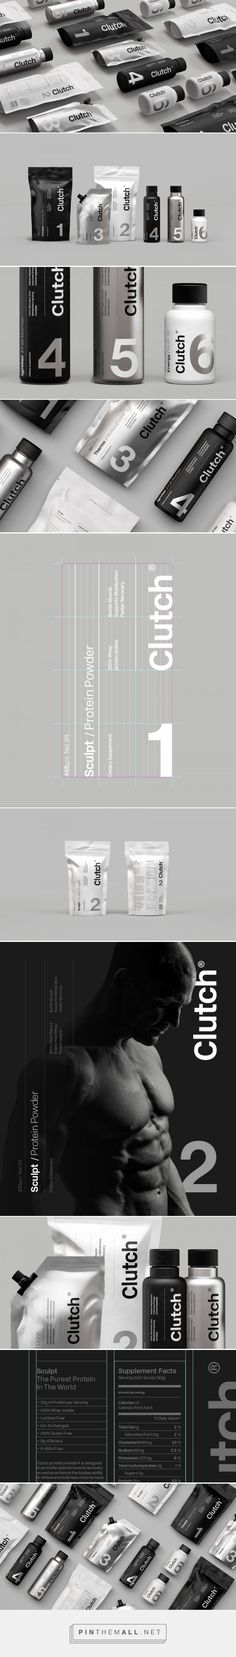 Clutch Bodyshop Fitness and Nutrition Branding and Packaging by SocioDesign | Fivestar Branding Agency – Design and Branding Agency & Inspiration Gallery